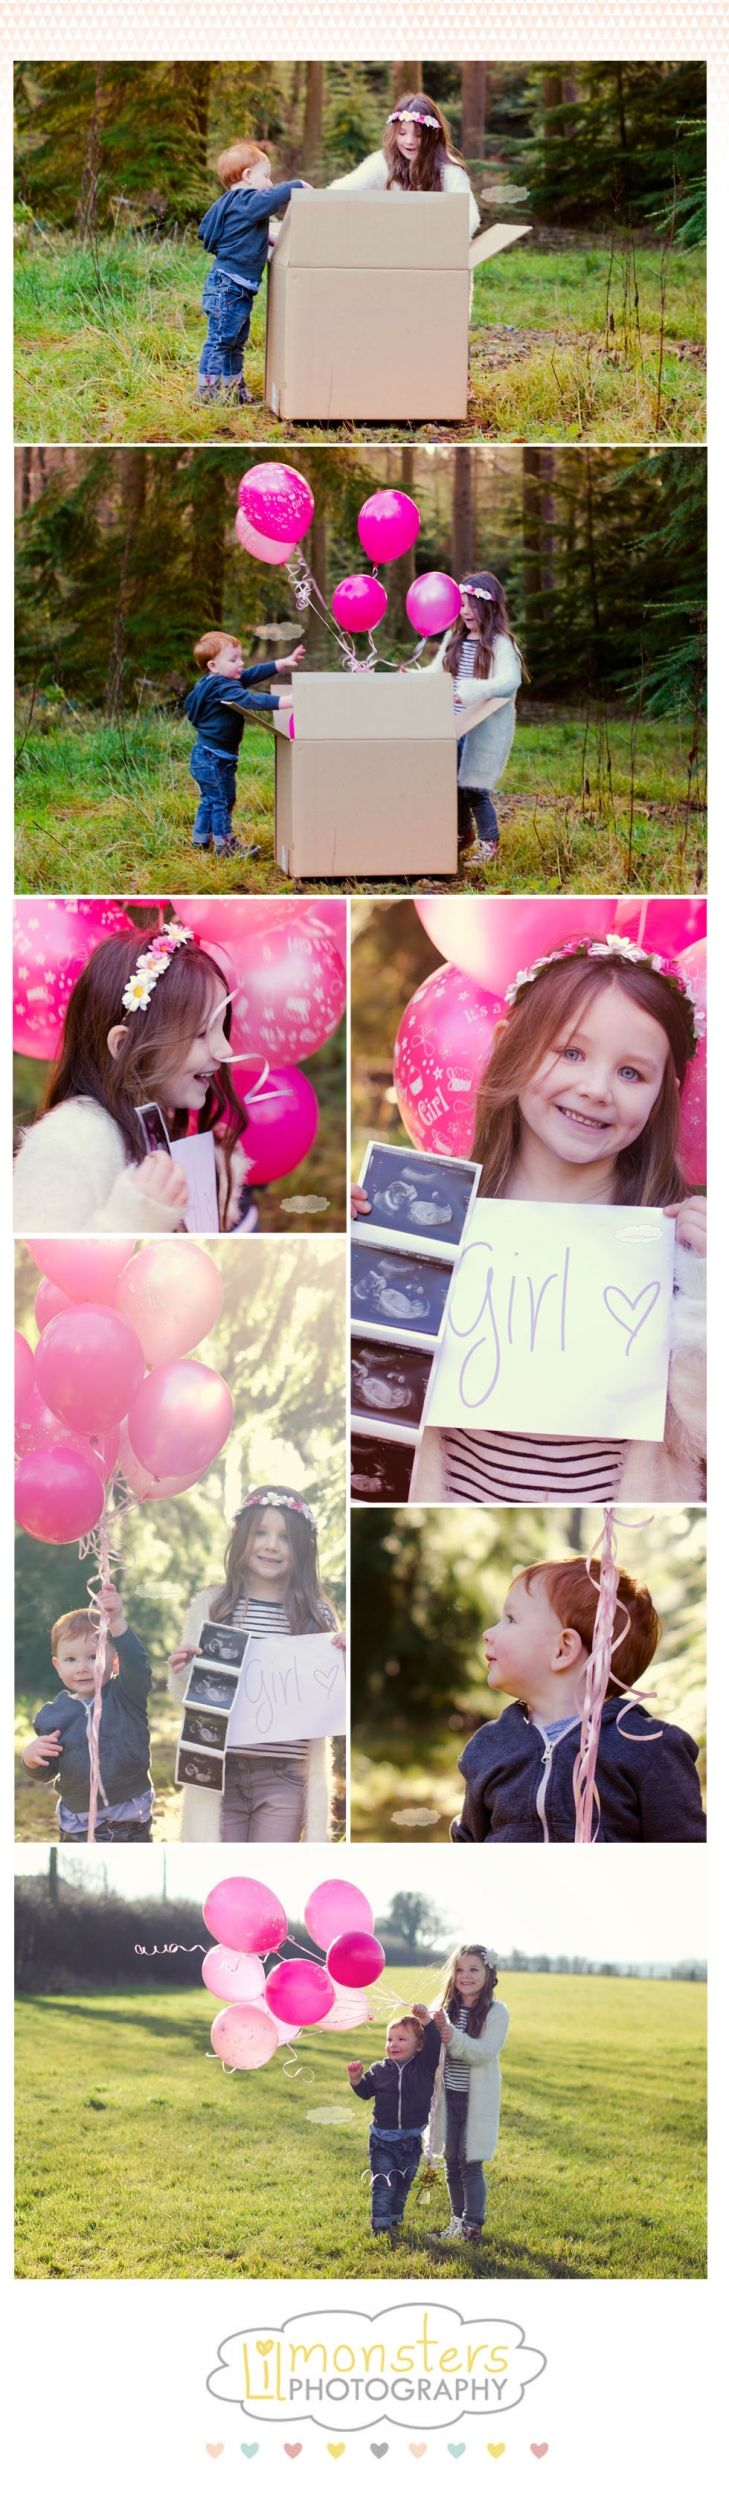 lilmonstersphotography » Photographers  Sibling gender reveal, it's a girl!  Copyright Lil Monsters Photography 2014